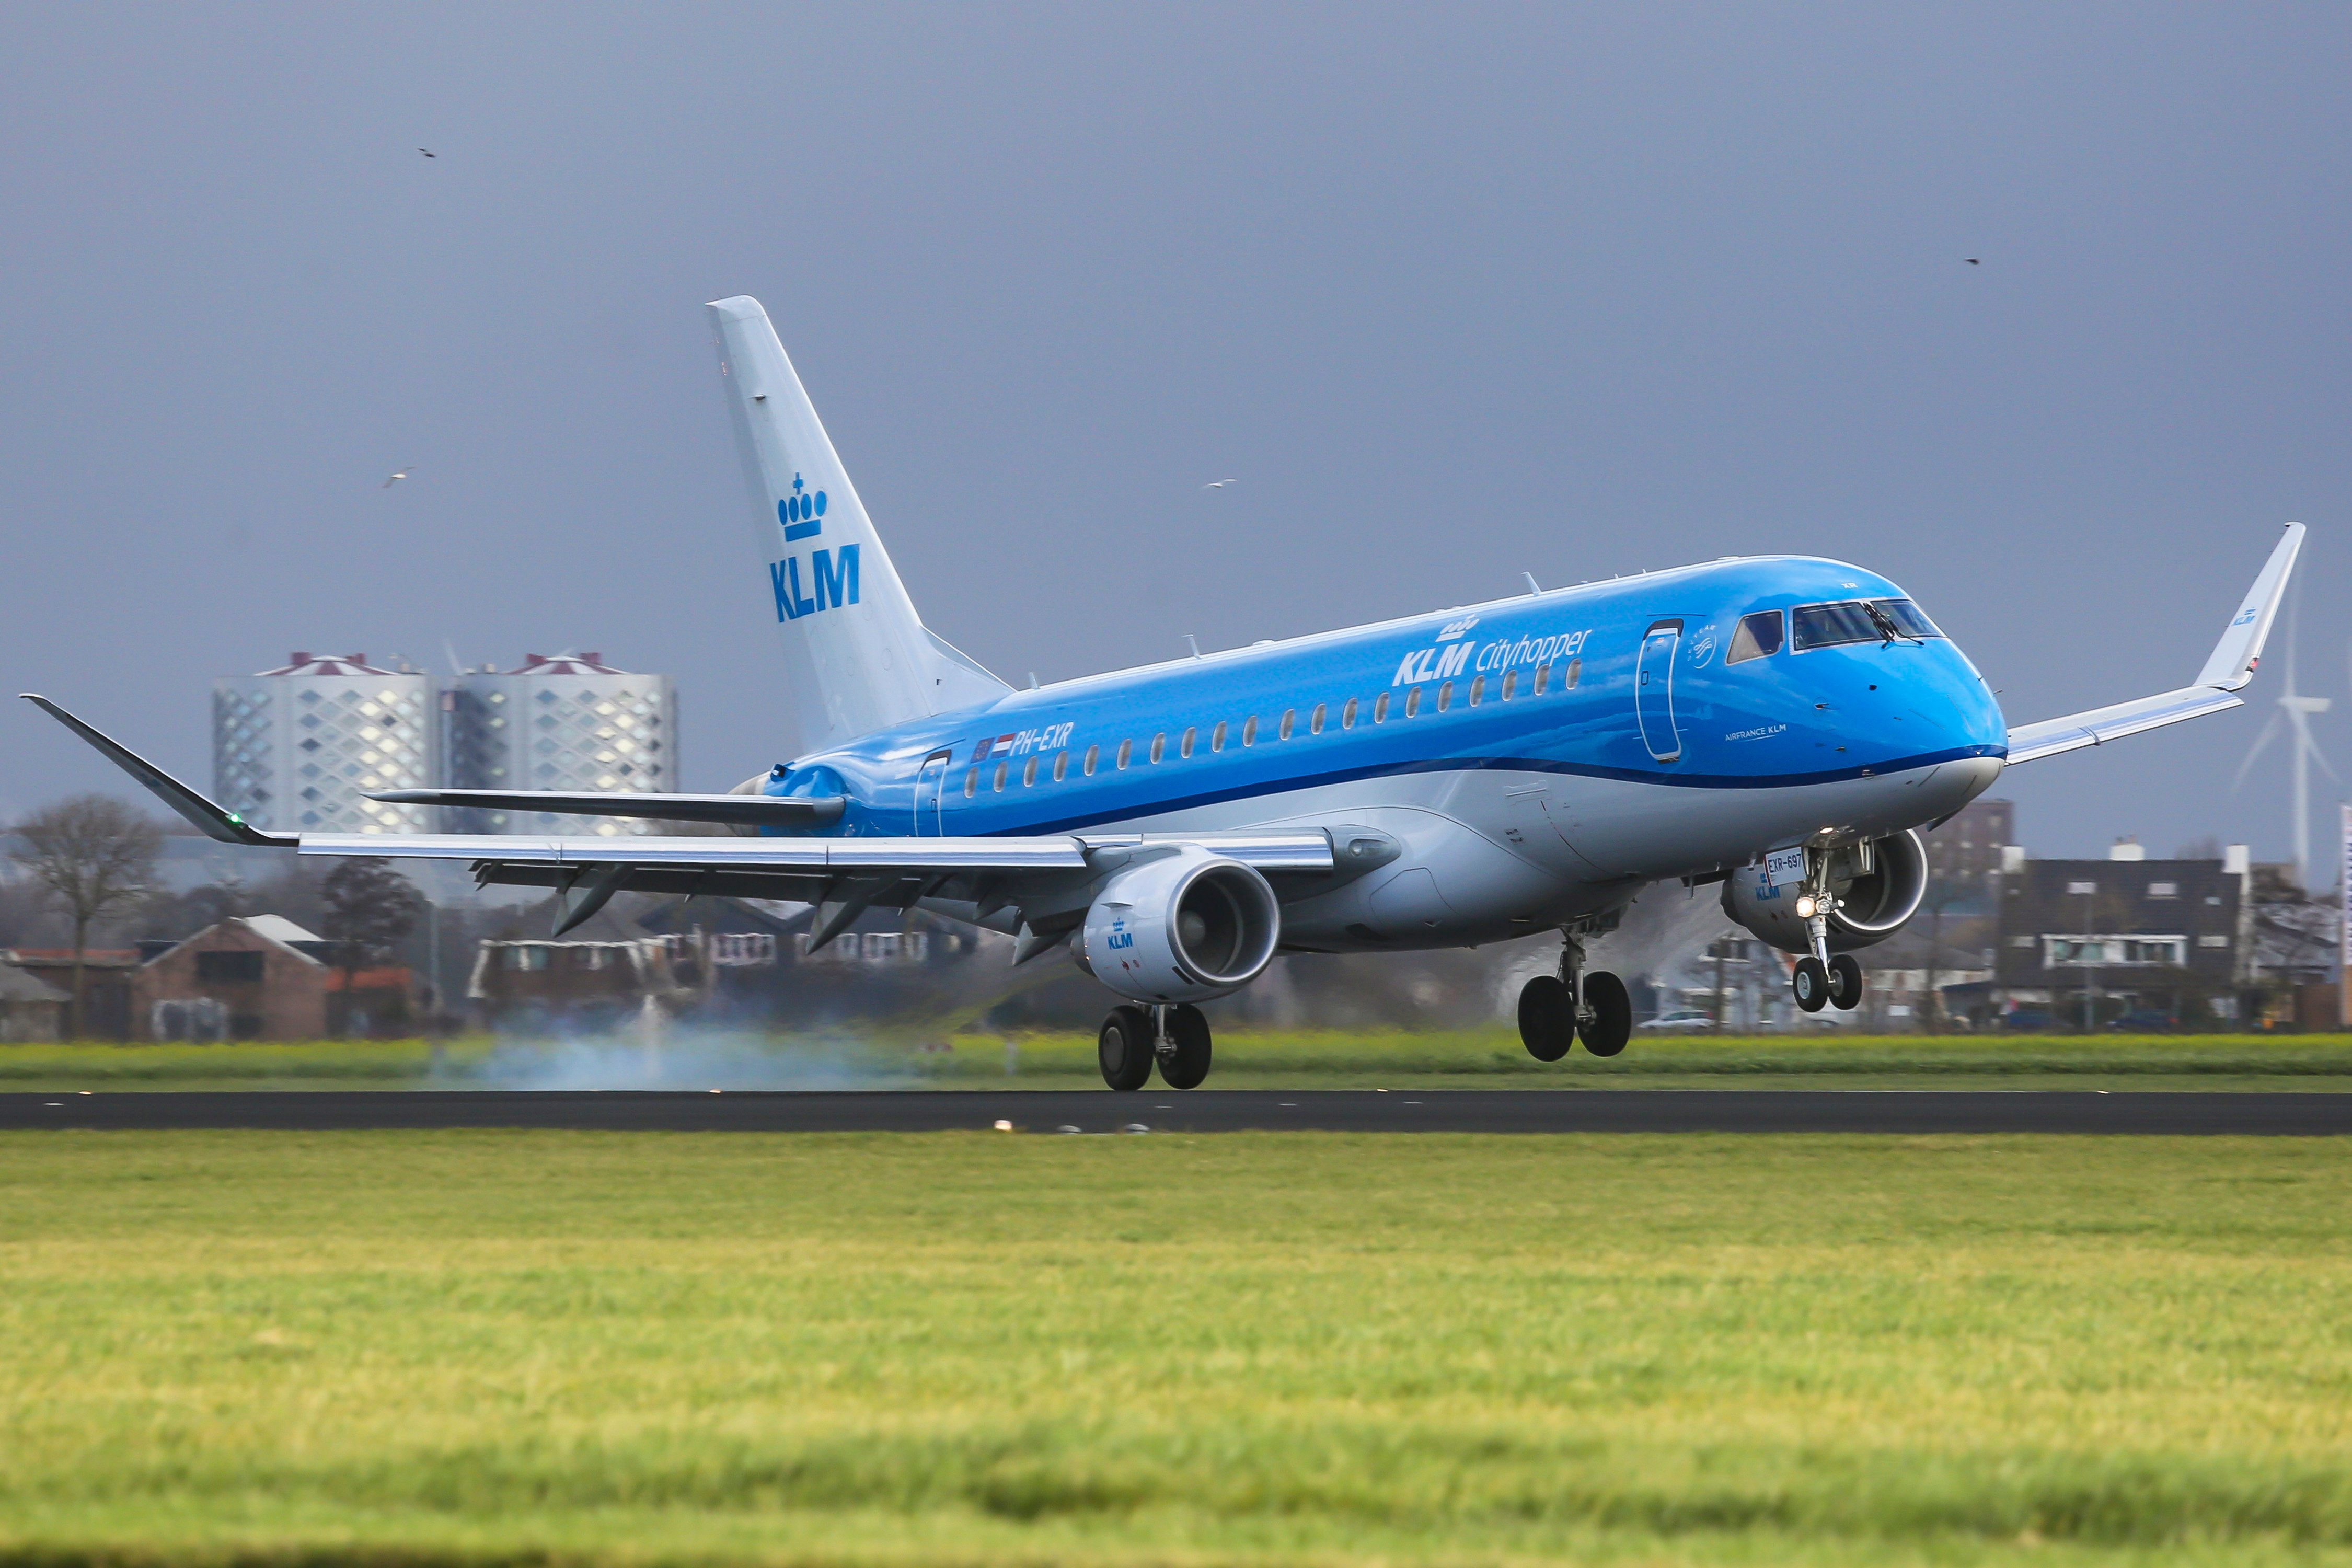 KLM, the Royal Dutch Airlines as seen in Amsterdam, Schiphol Airport in November 2017 while landing, taking off and taxiing. KLM uses Amsterdam airport as the main hub to connect with Europe,  Africa, Middle East, America and Asia. Recently KLM phased out their older Fokker planes. Nowadays KLM uses Boeing 737, 747, 787 Dreamliner, Airbus A330 and Embraer 190 and 175. KLM has 3 subsidiaries KLM Cityhopper, Transavia and Martinair. The current fleet of KLM (exuding subsidiaries) is 119 planes and 18 orders of next generation aircrafts like Airbus A350 and Boeing 787 Dreamliner. KLM is part of SKYTEAM alliance (Photo by Nicolas Economou/NurPhoto via Getty Images)